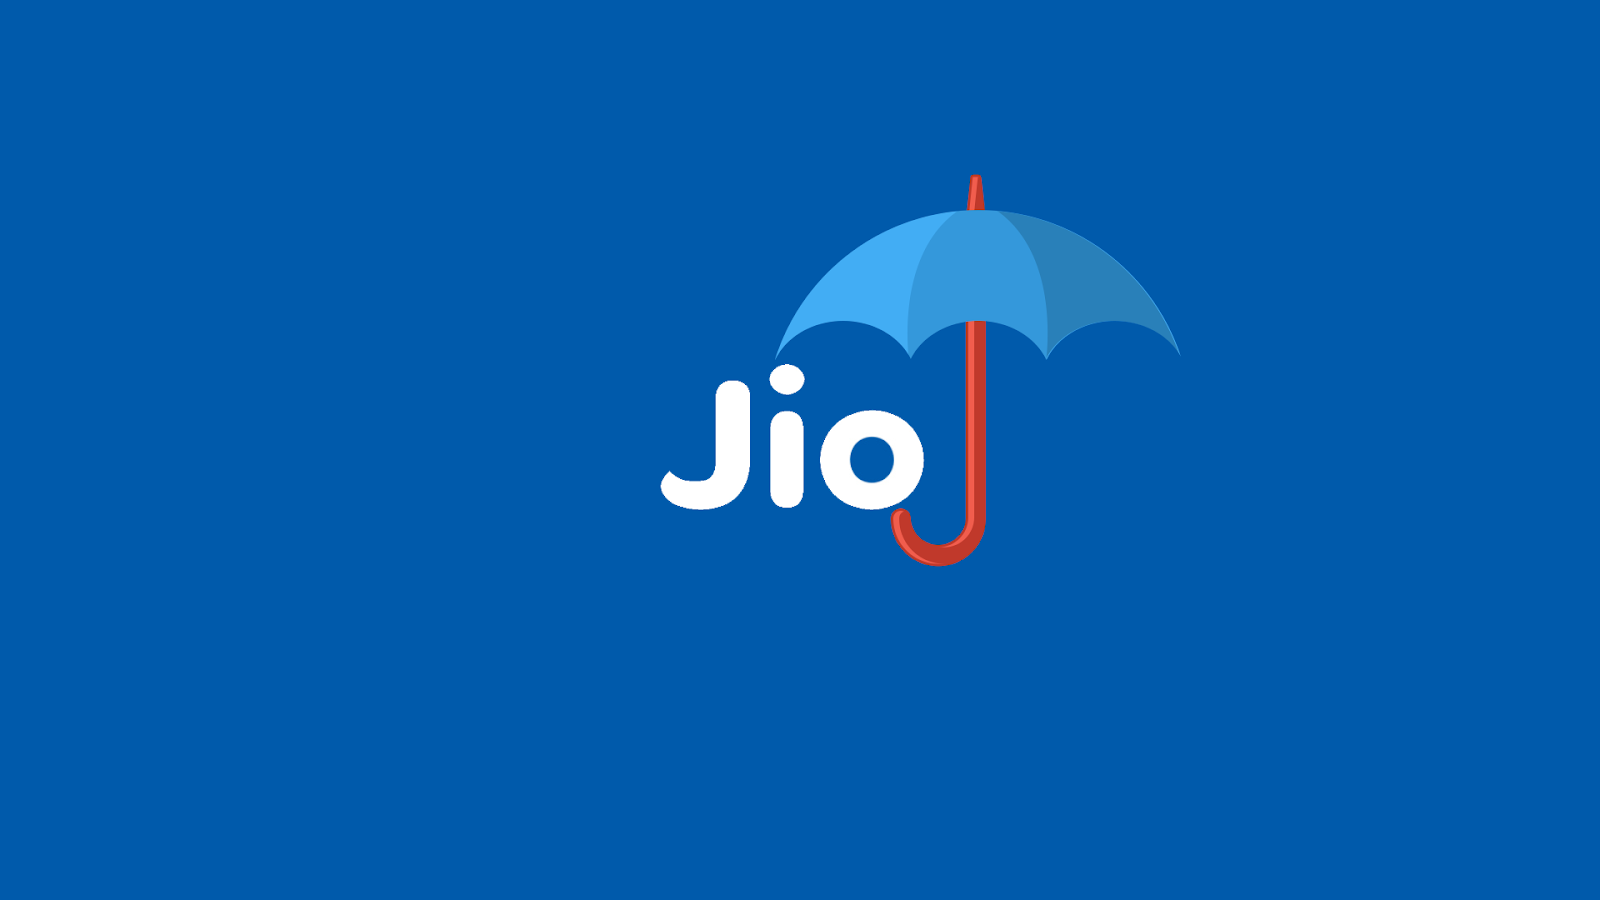 Jio 251 Work From Home Data Offer: Get Loot 102GB 4G Data